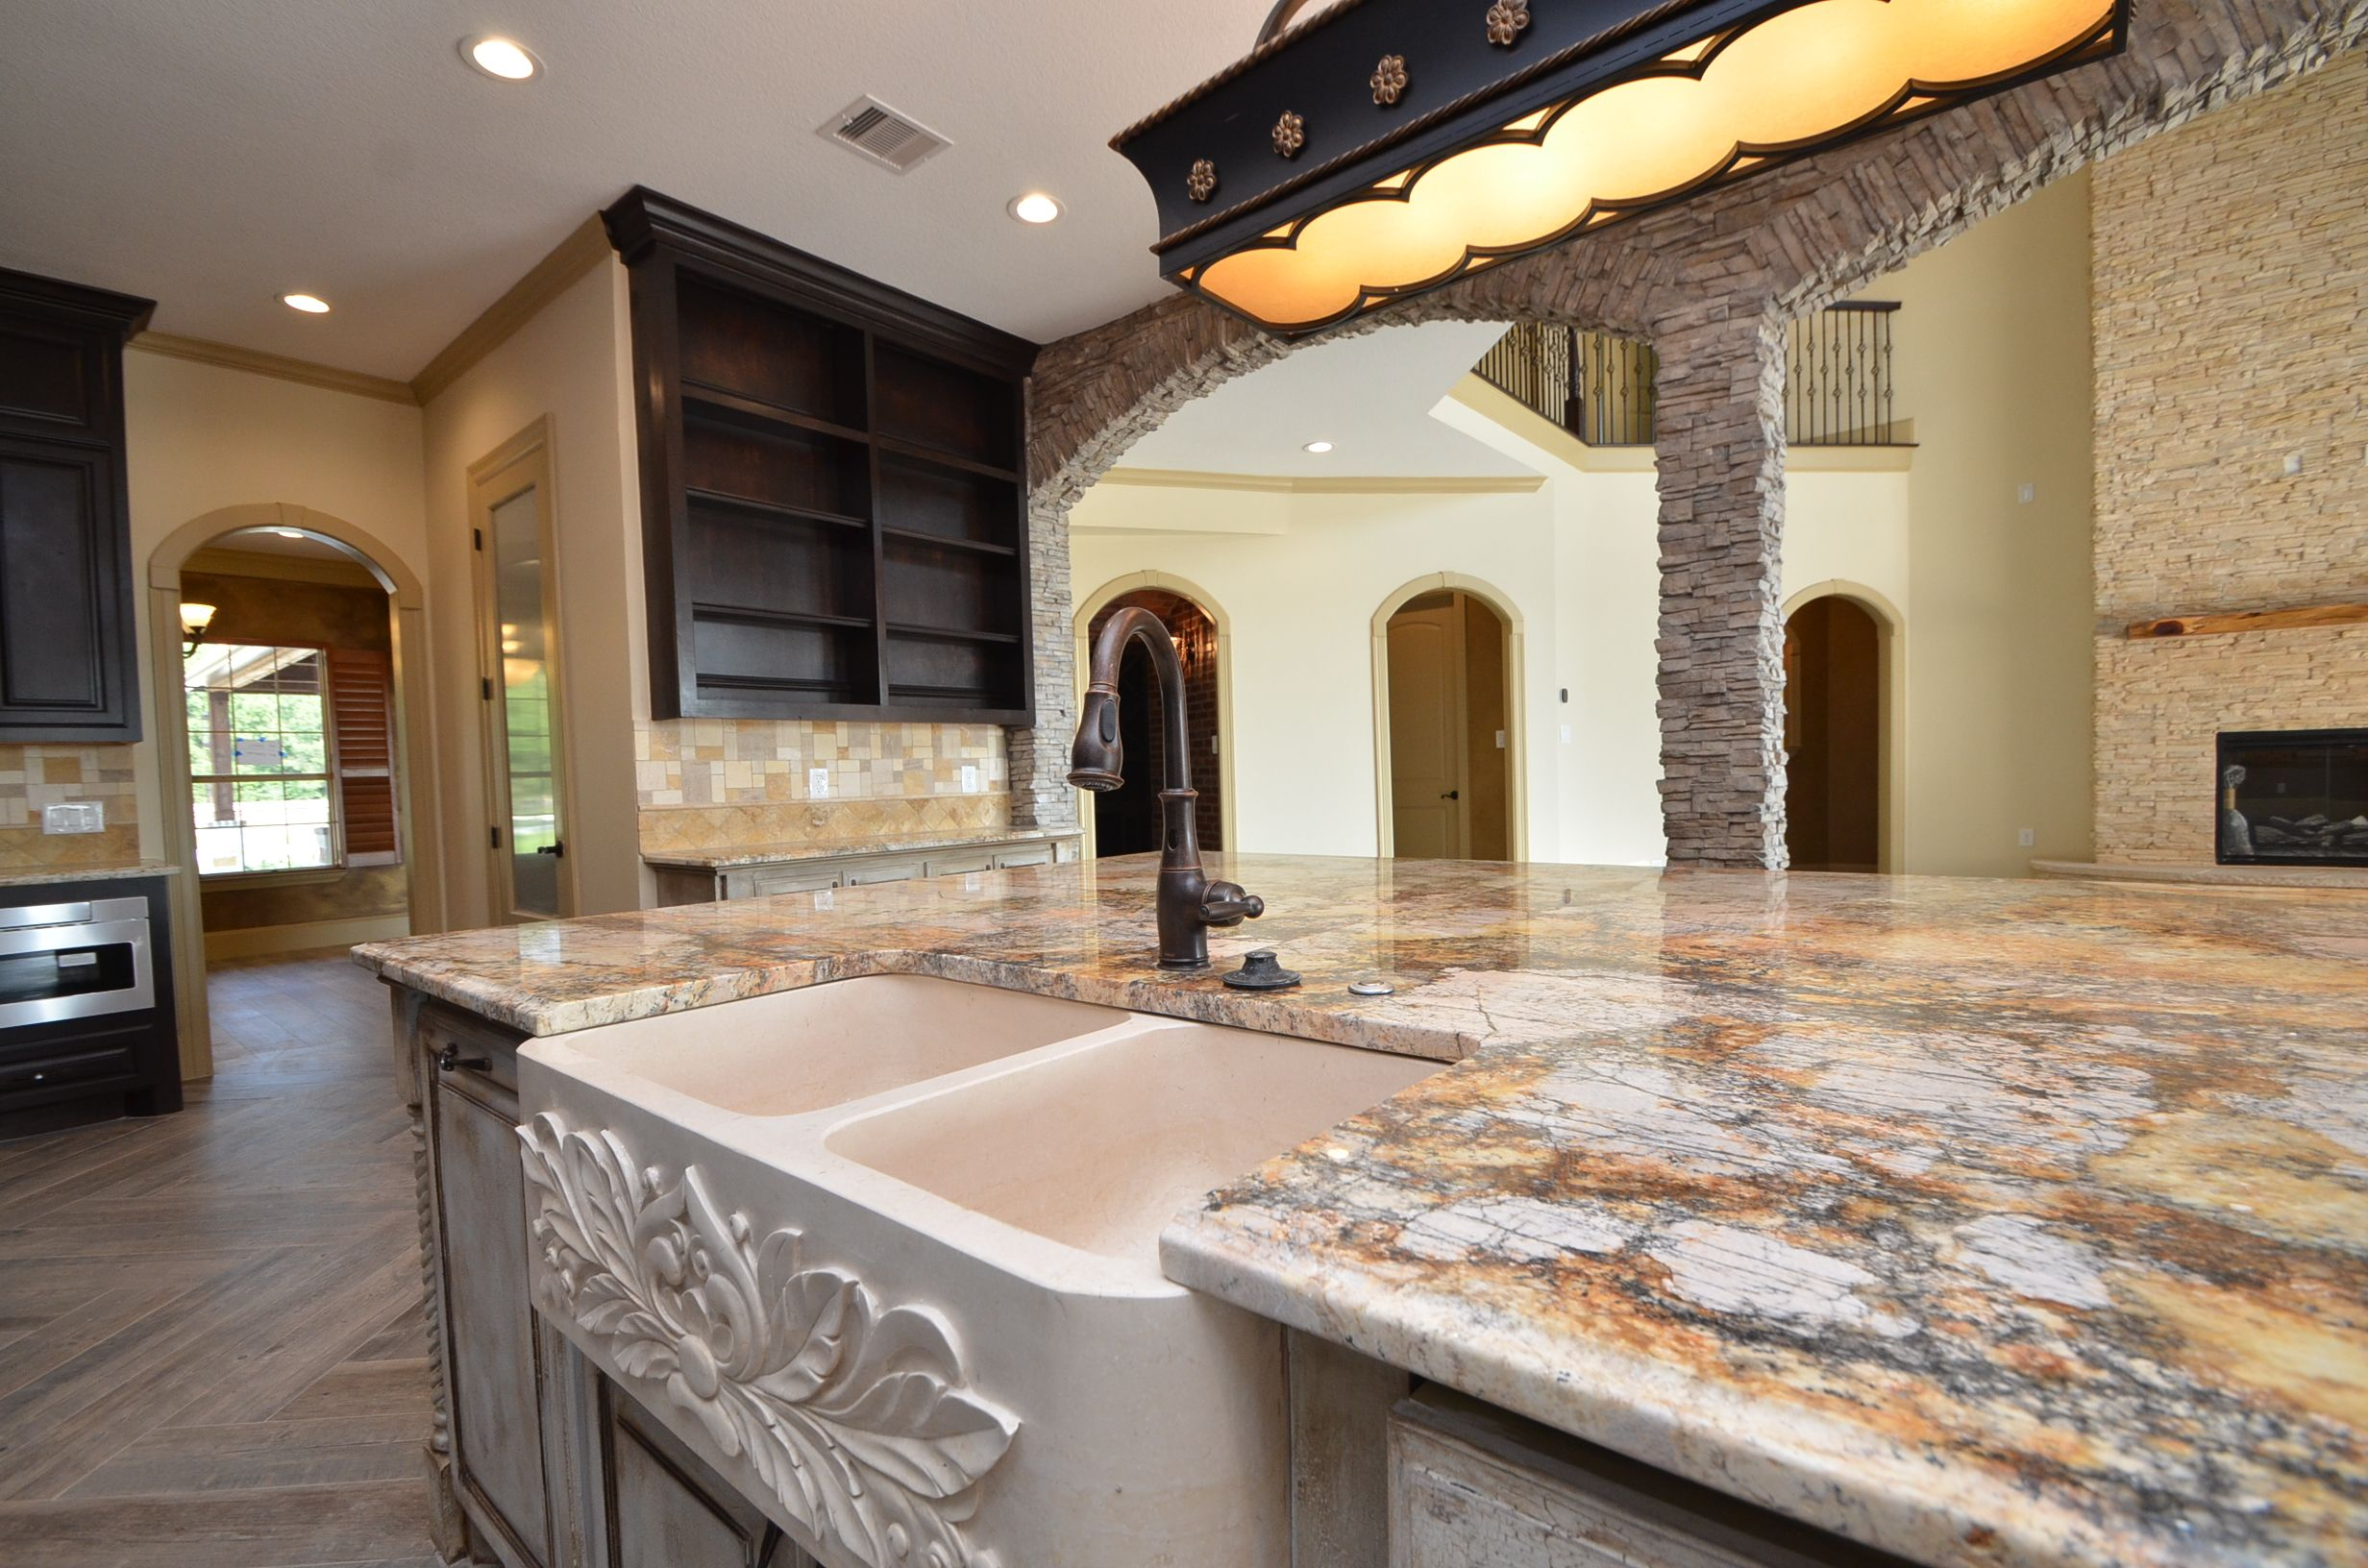 Kitchen Remodel with a beautiful sink Remodel by Sapphire Custom Homes#SapphireCustomHomes#CustomHomeBuilder#Remodel#Kitchen#StoneAccentWall#Acreage#Texas#RealEstate#RusticHome#Farmhouse